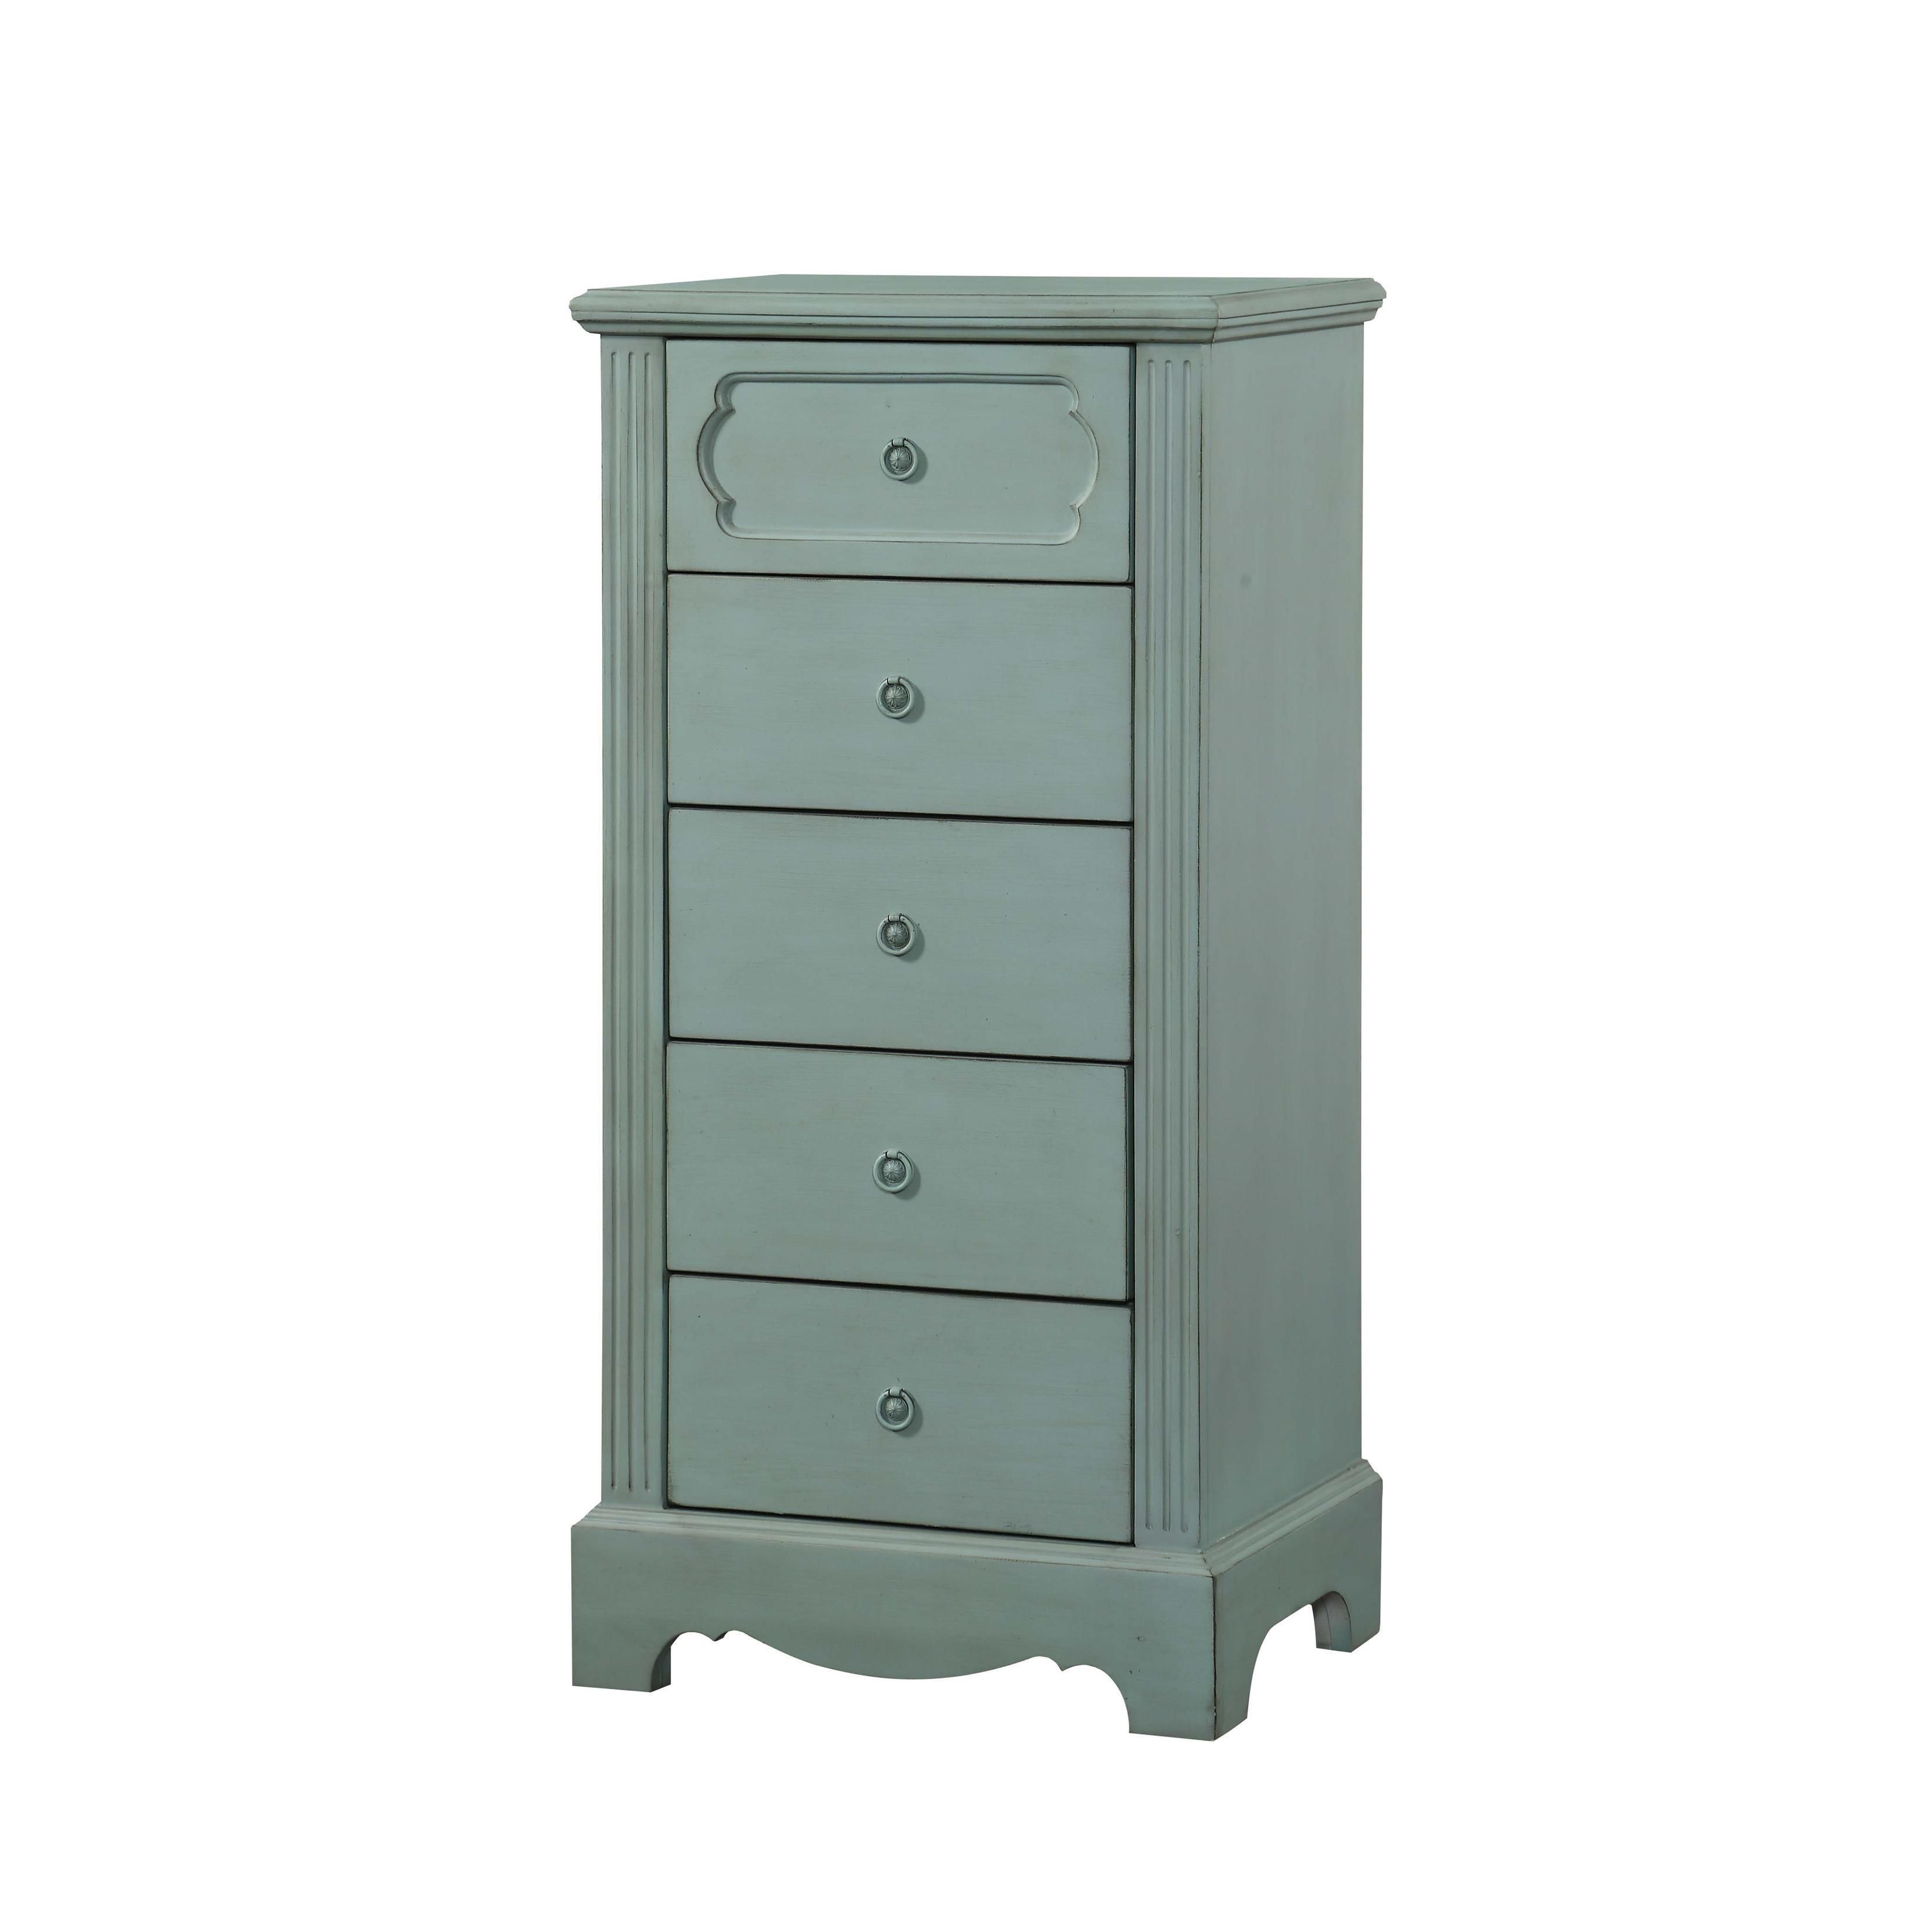 Acme Furniture Morre Antique Teal Pine MDF Chest Chest Antique